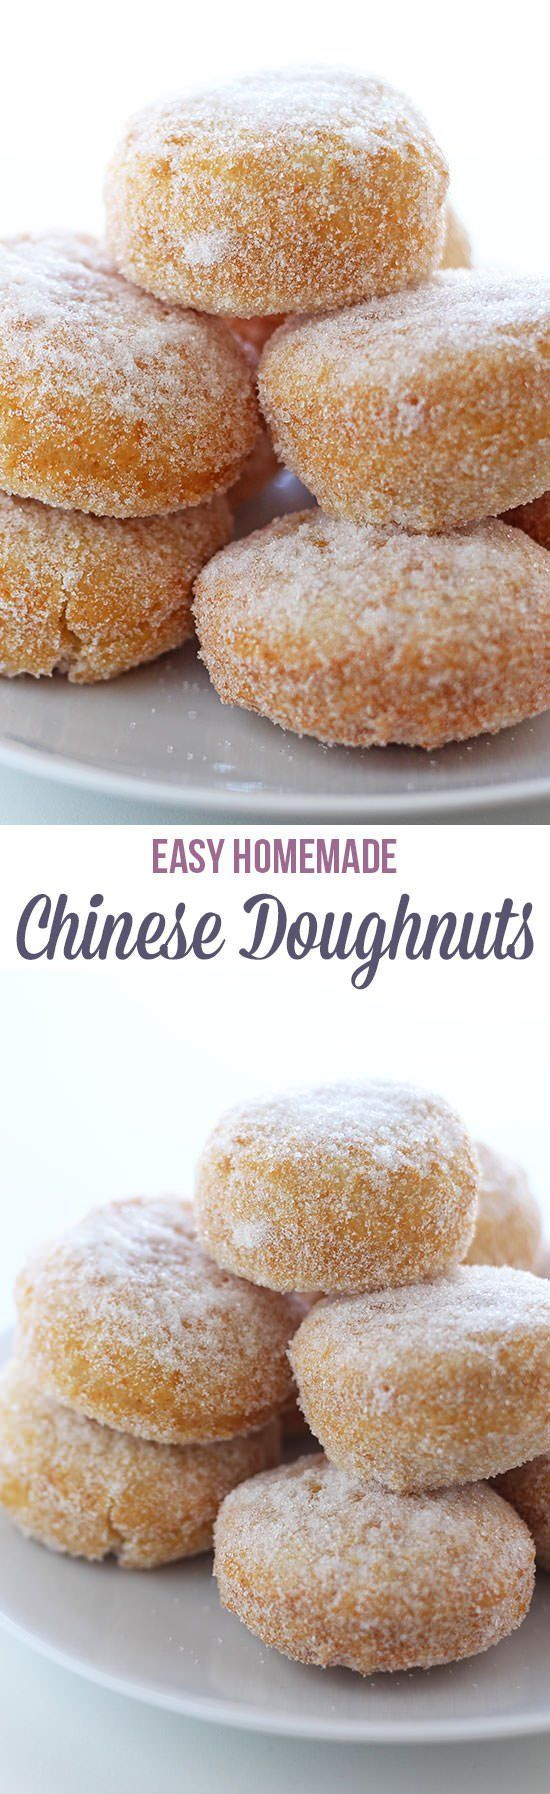 Easy Recipes on More